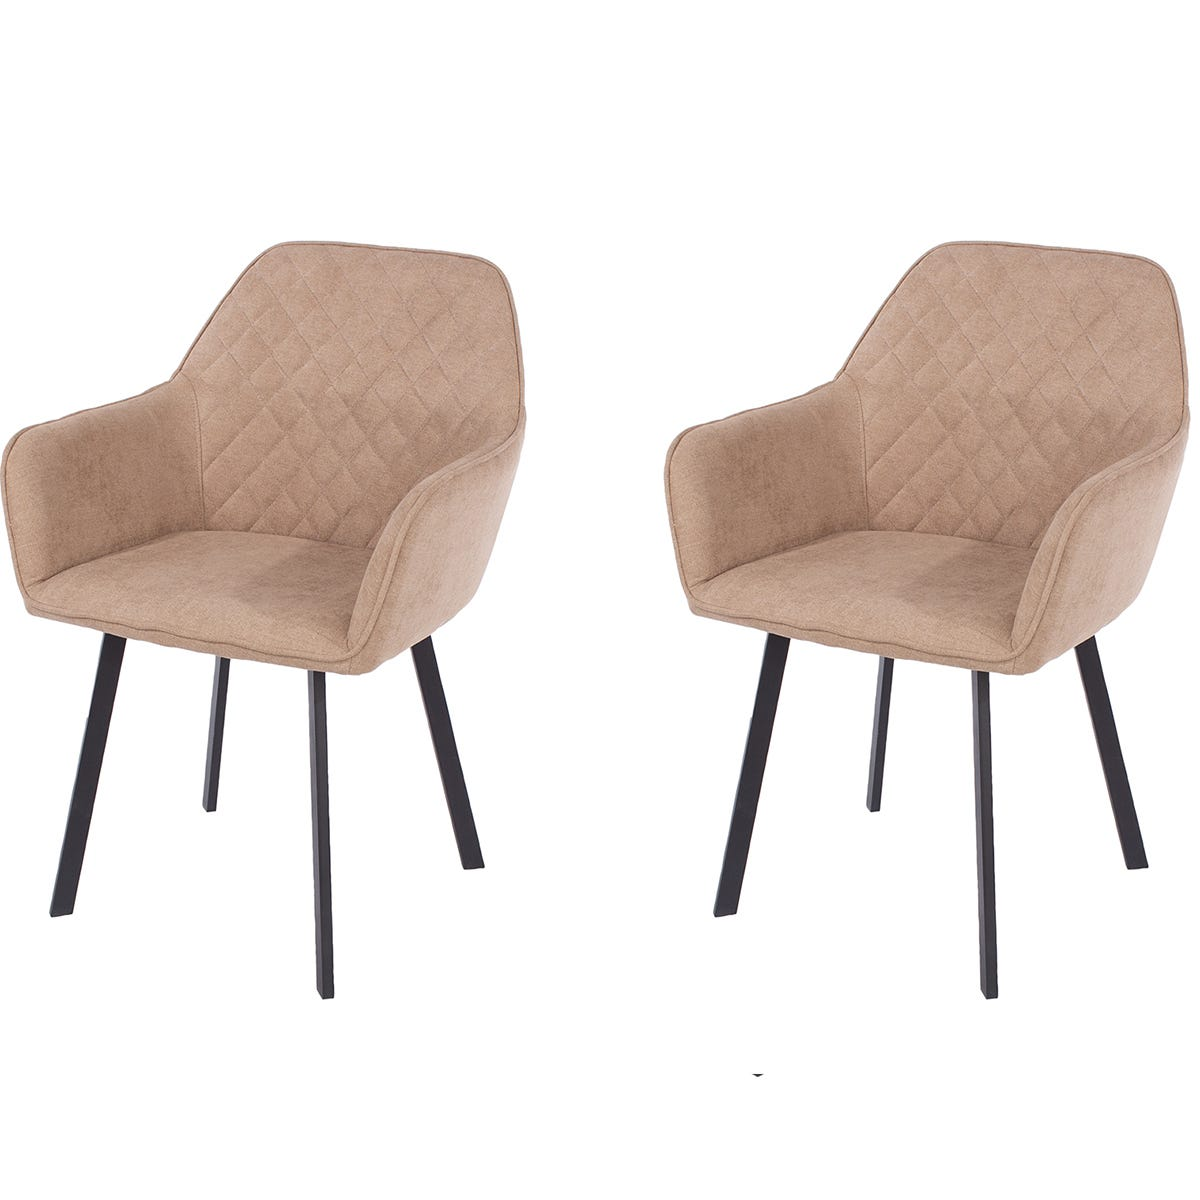 Aspen Sand Fabric Upholstered Armchairs With Black Metal Legs (Pair)